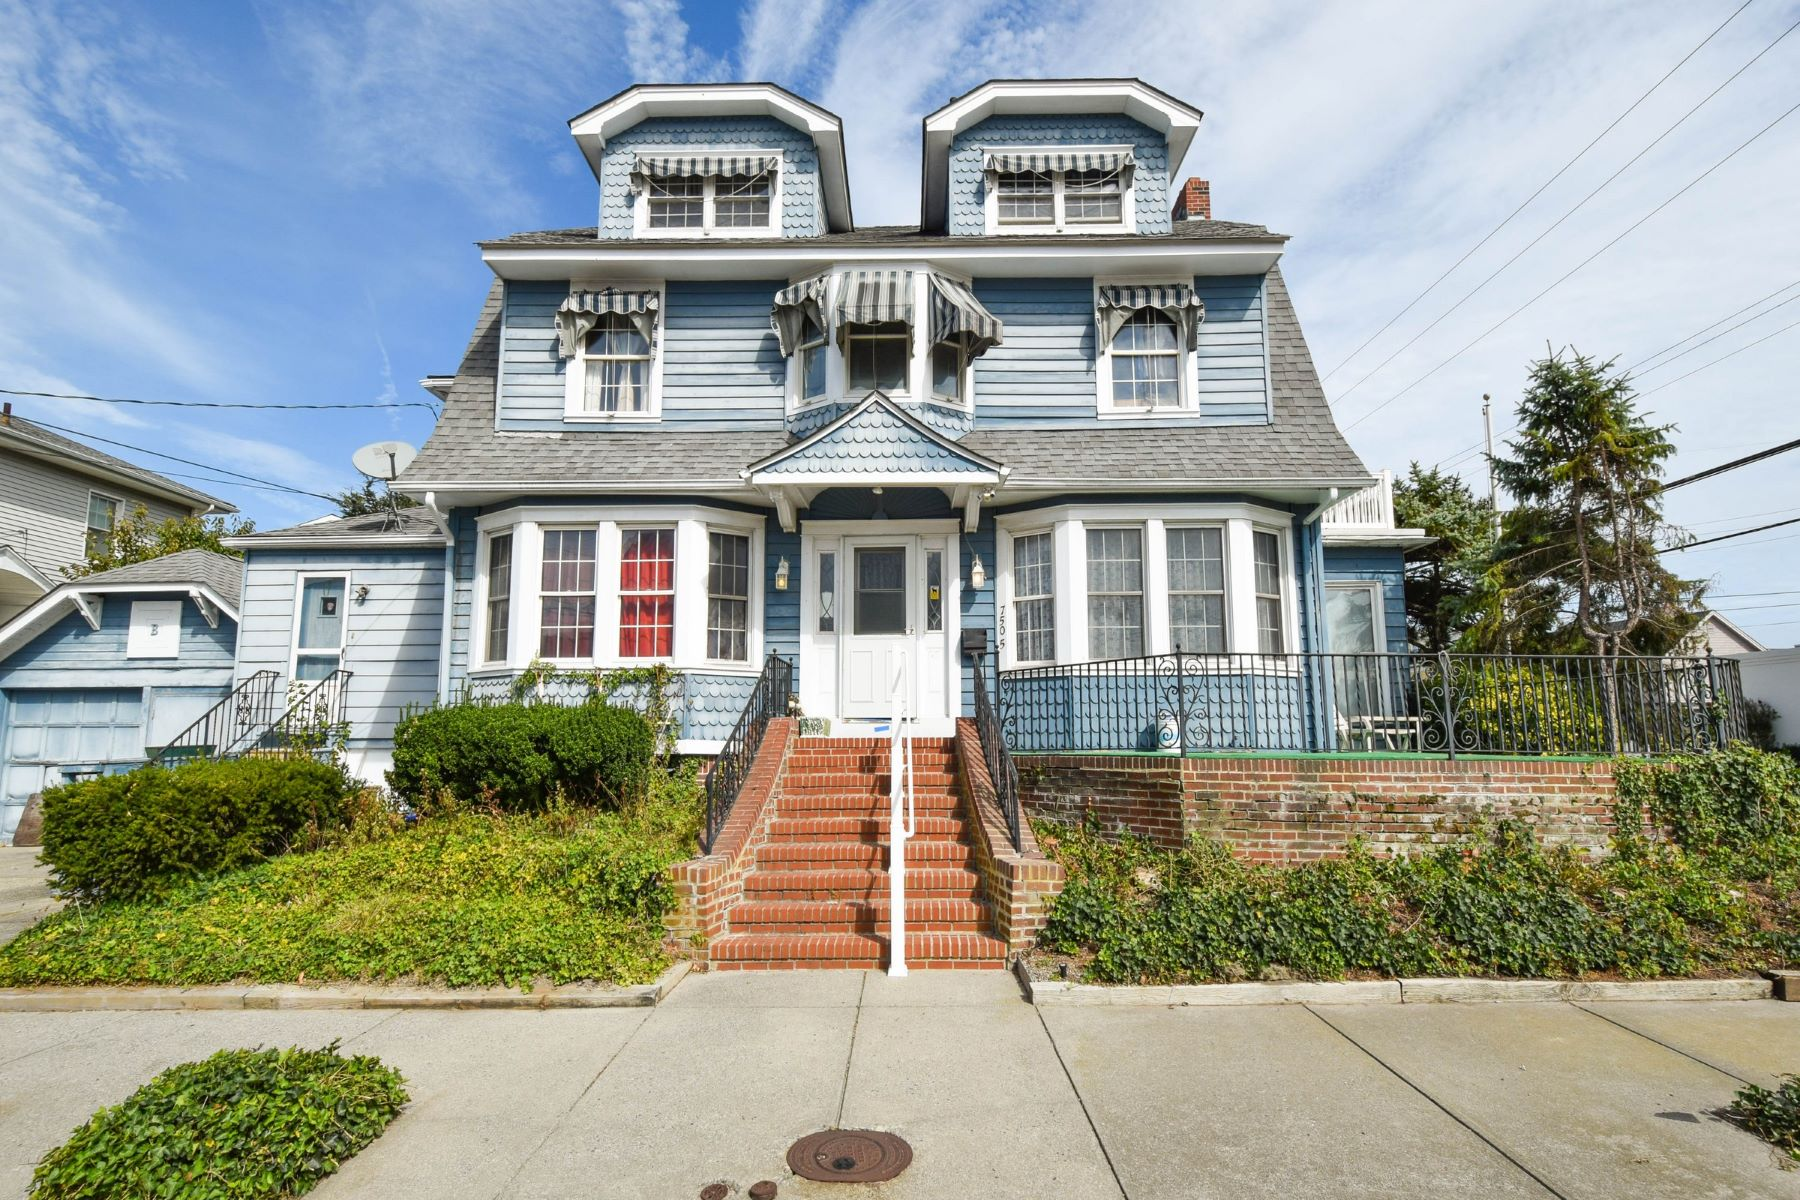 Single Family Homes for Sale at 21 S Barclay Ave Margate, New Jersey 08402 United States